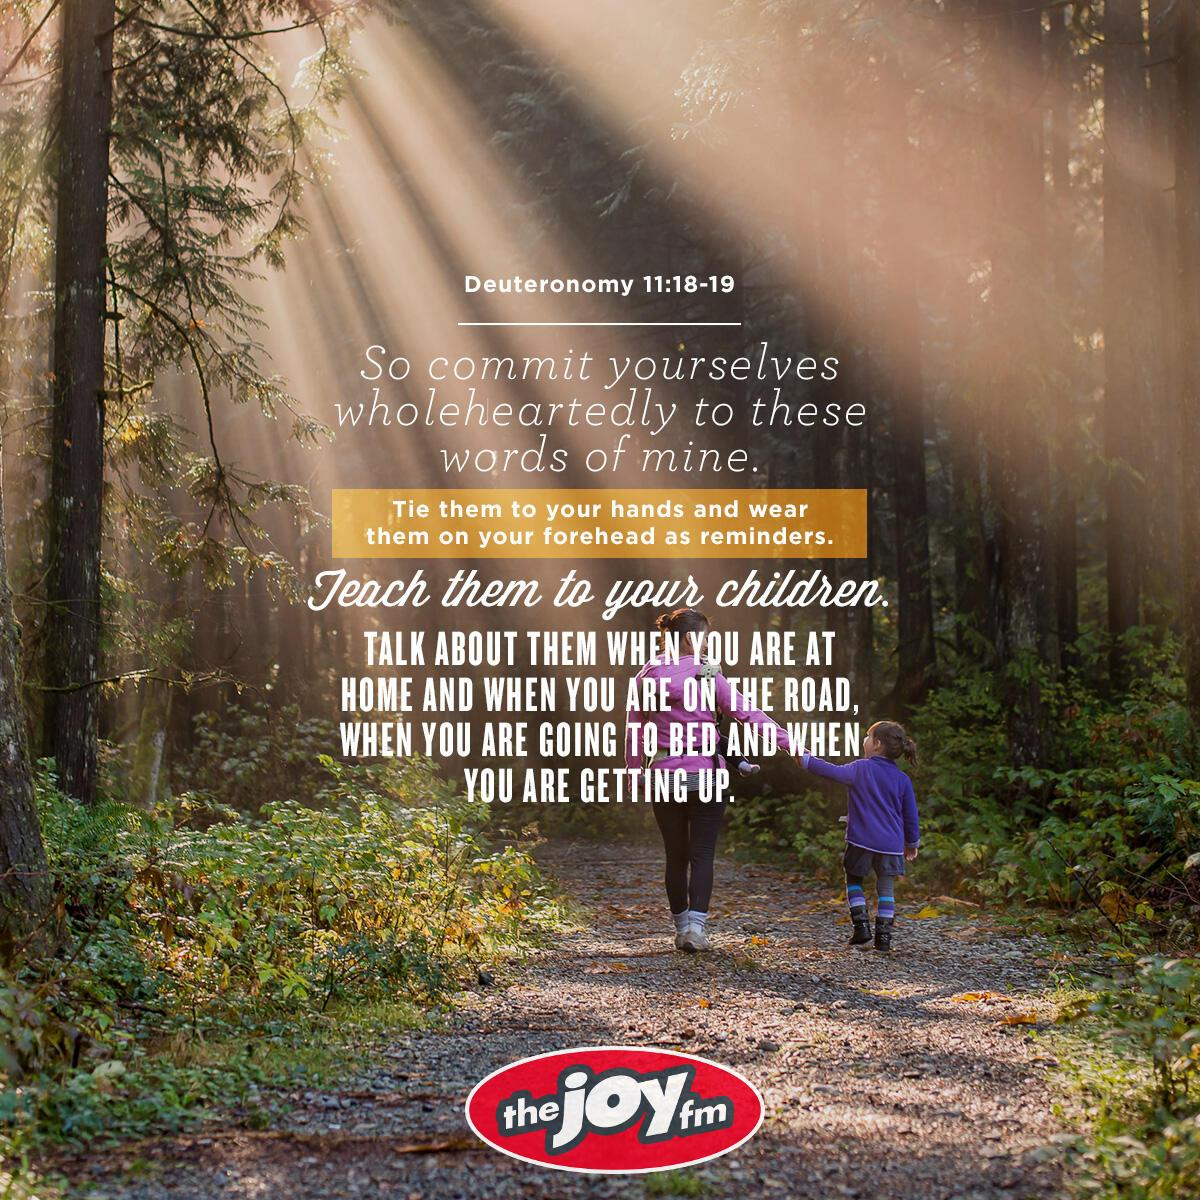 Deuteronomy 11:18-19 - Verse of the Day